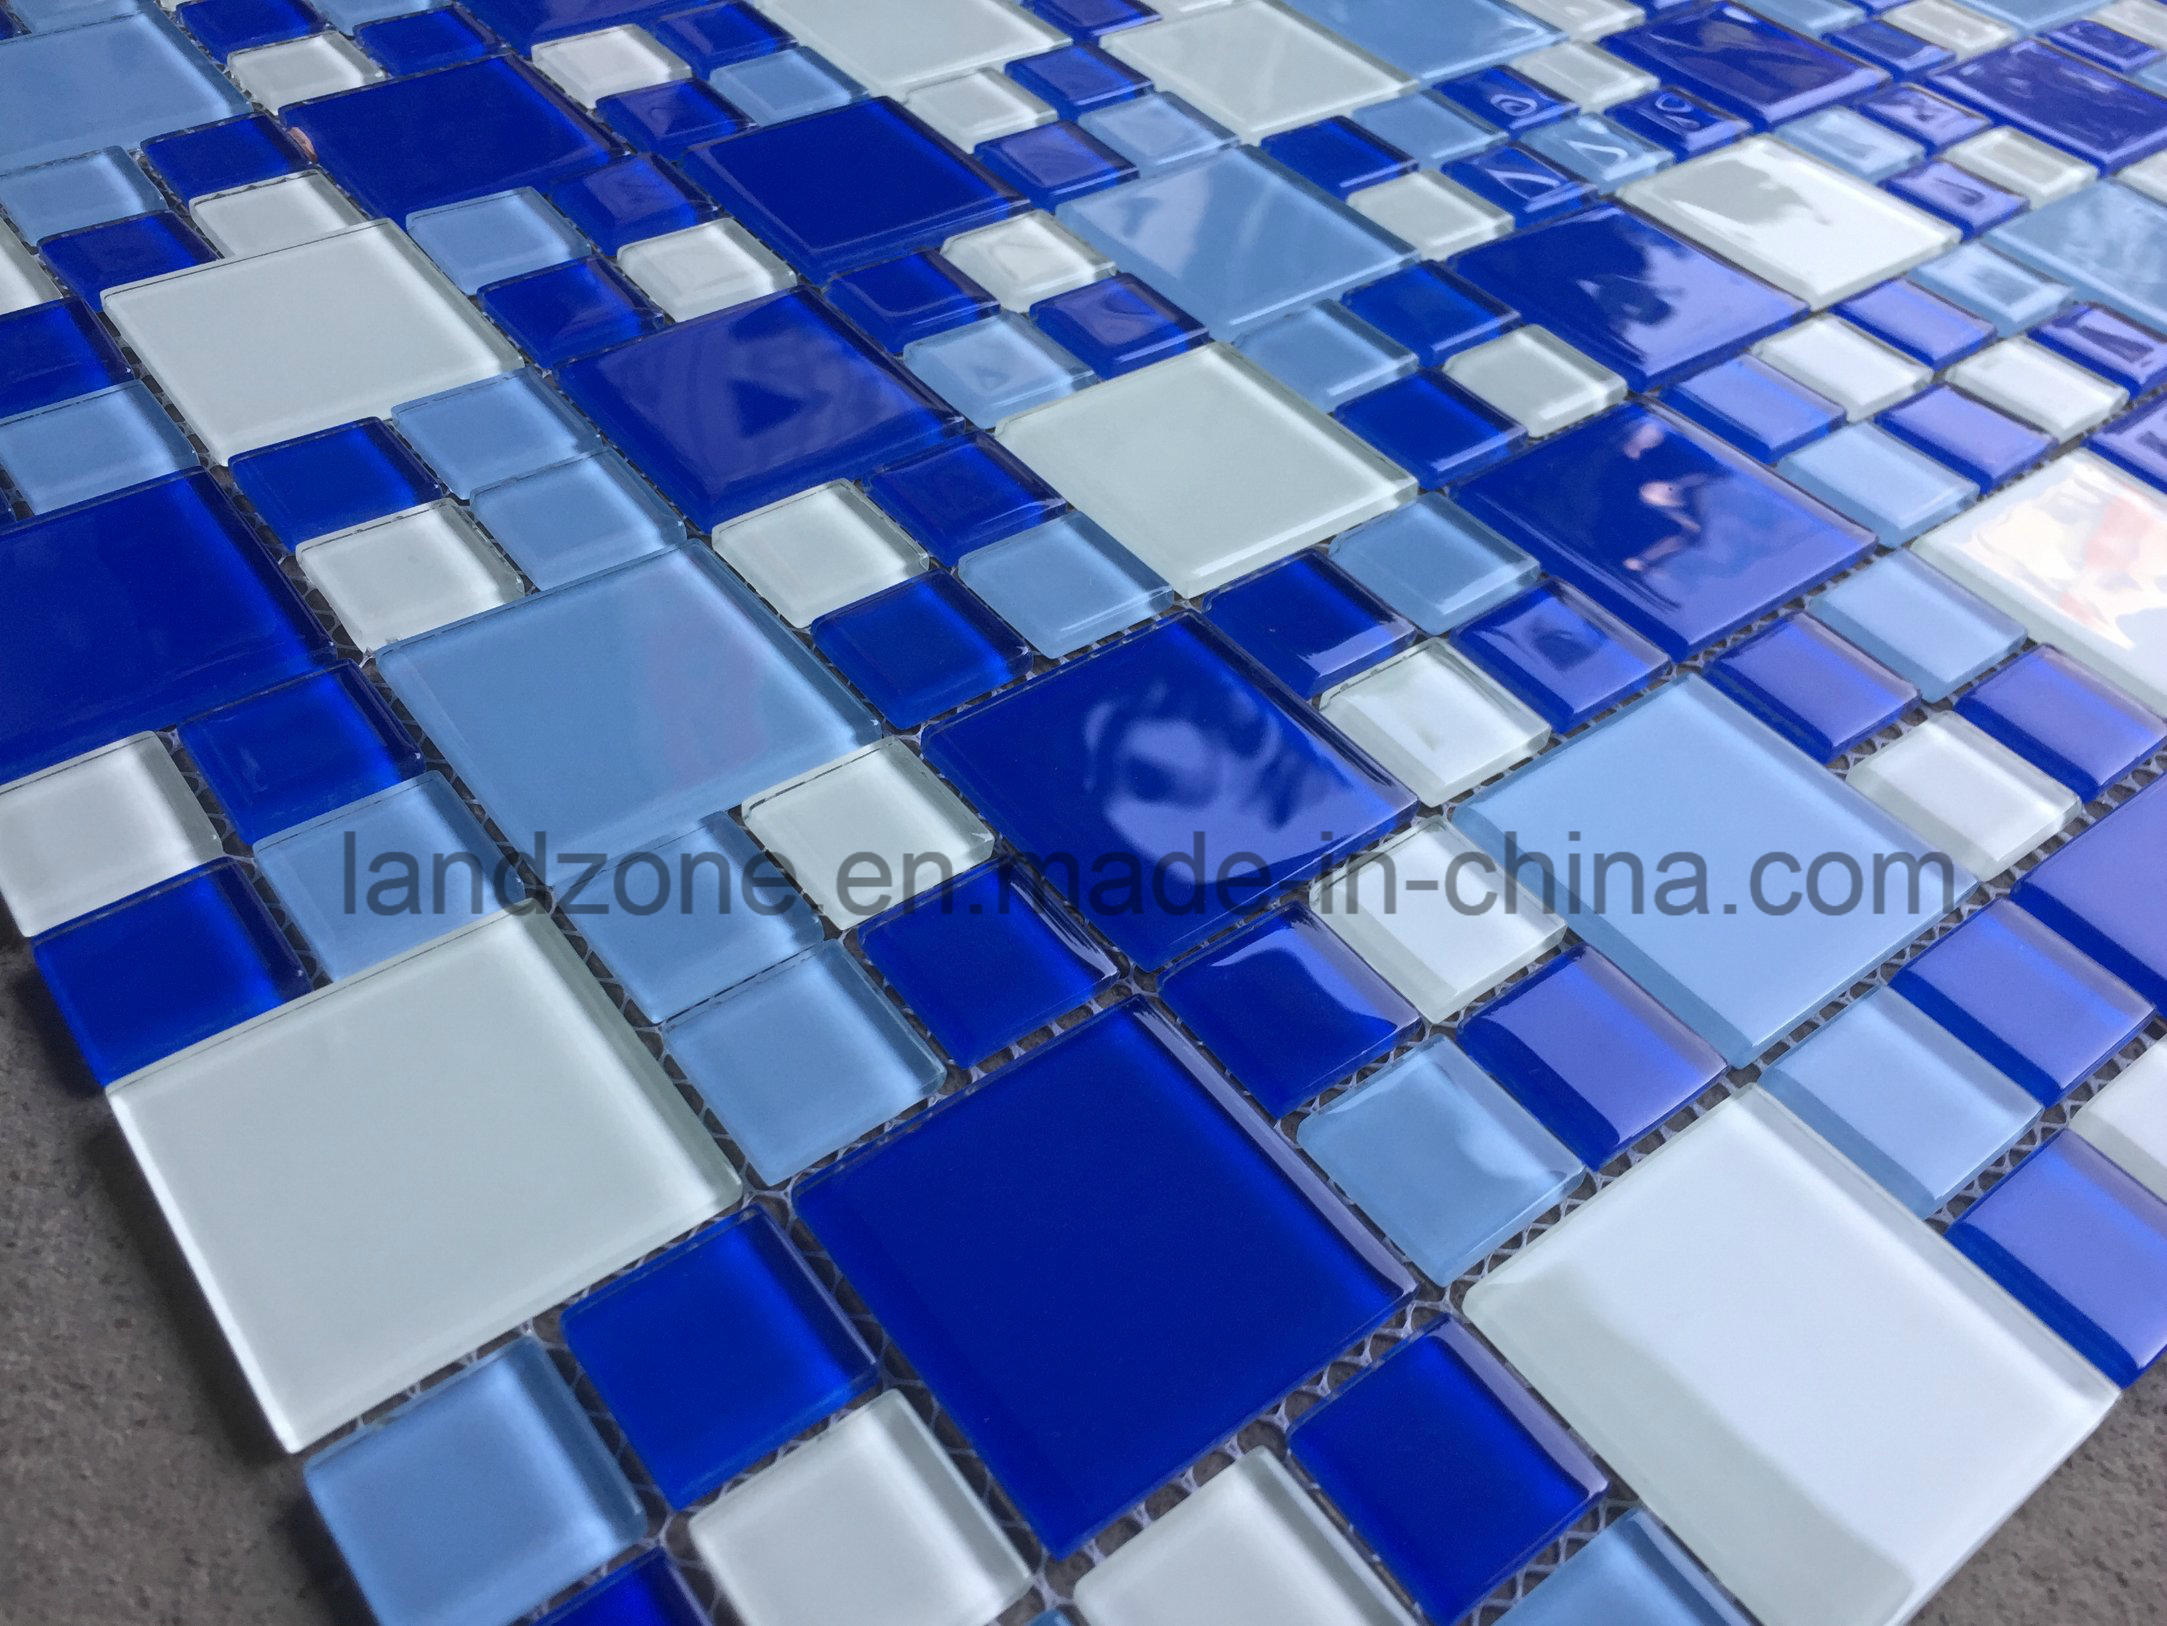 china swimming pool tile swimming pool tile manufacturers suppliers price made in china com